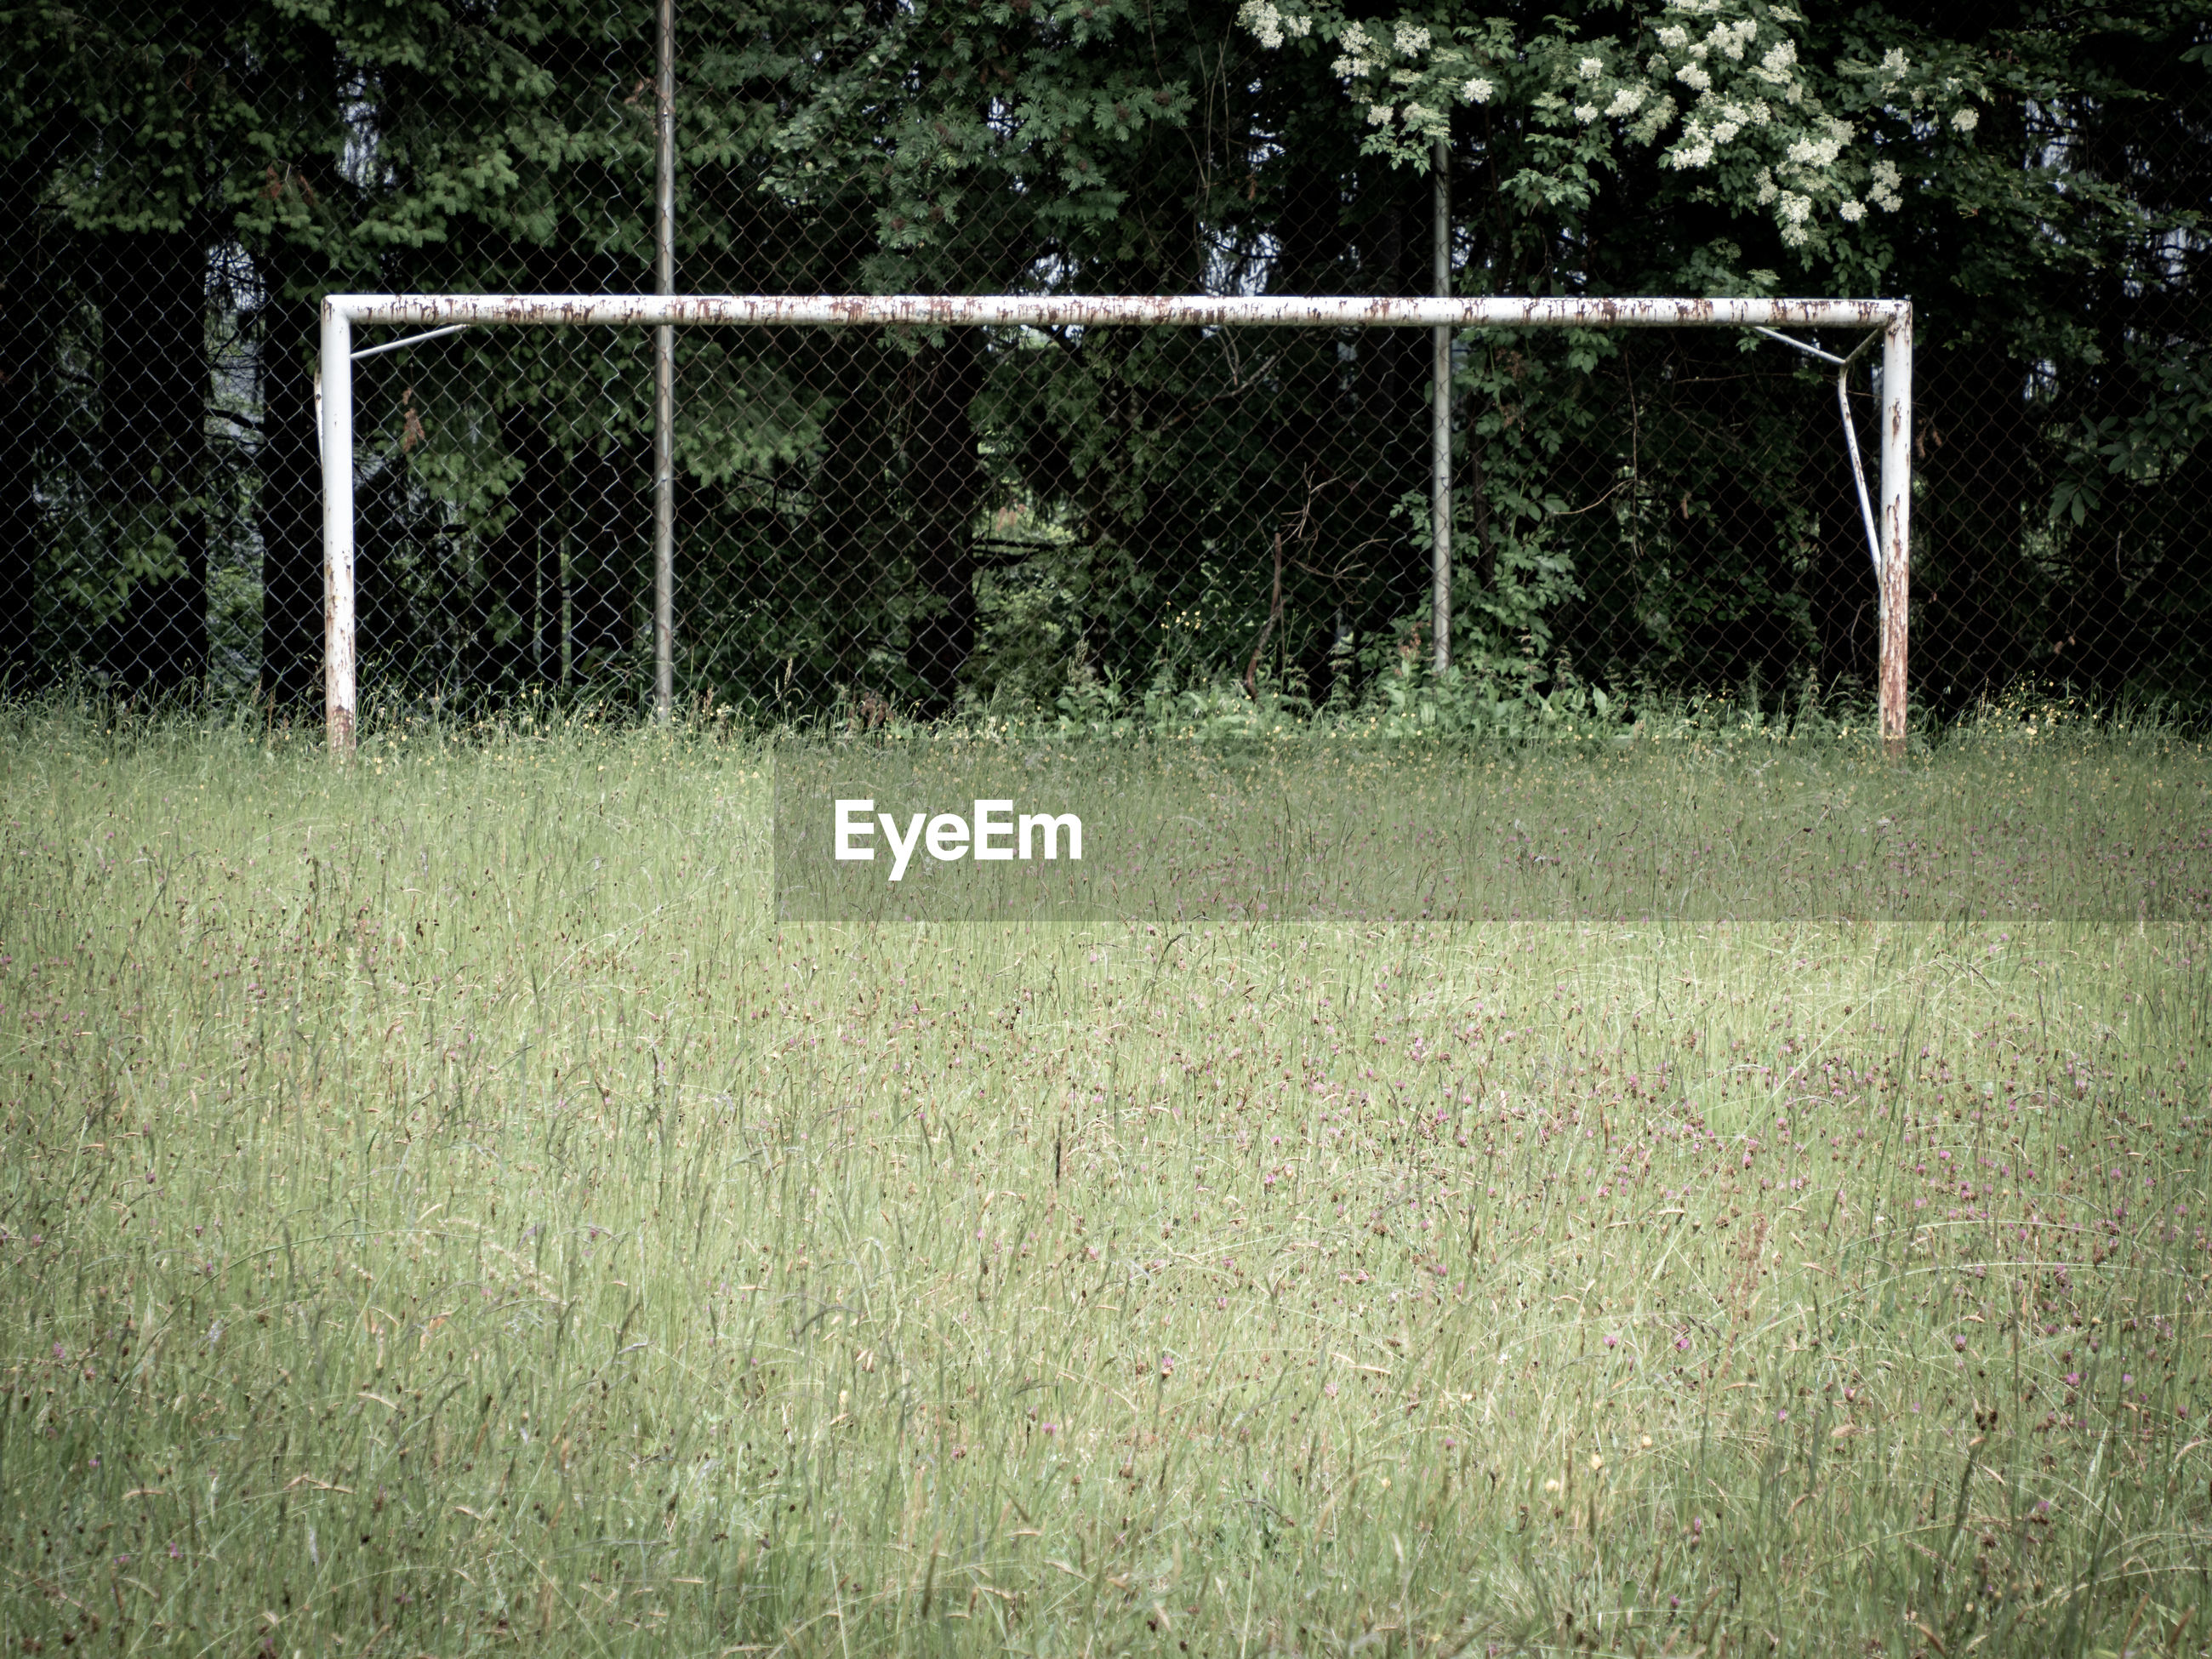 No soccer on this lost place field